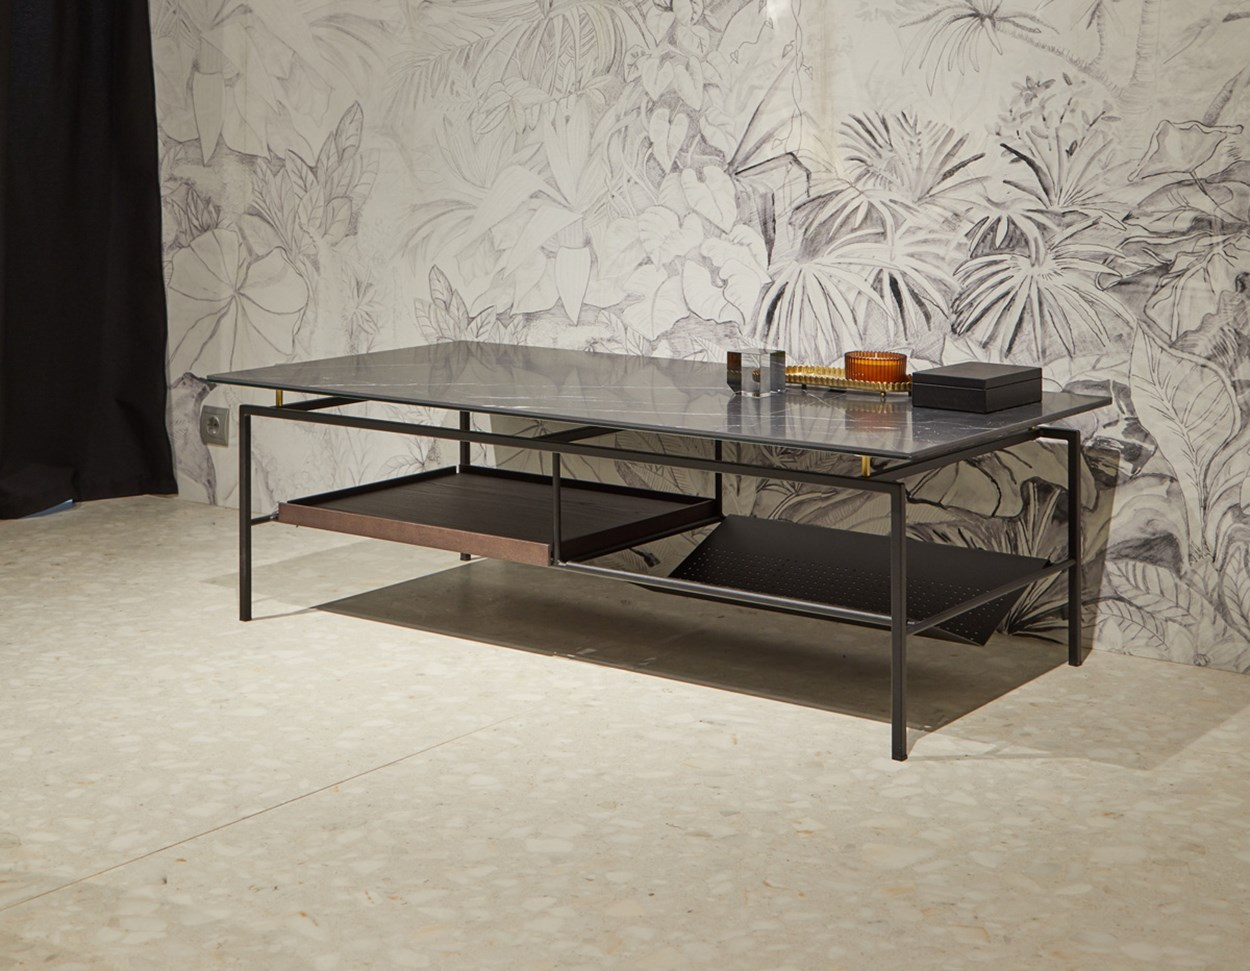 Dressy-Simone-coffee-table-01.jpg